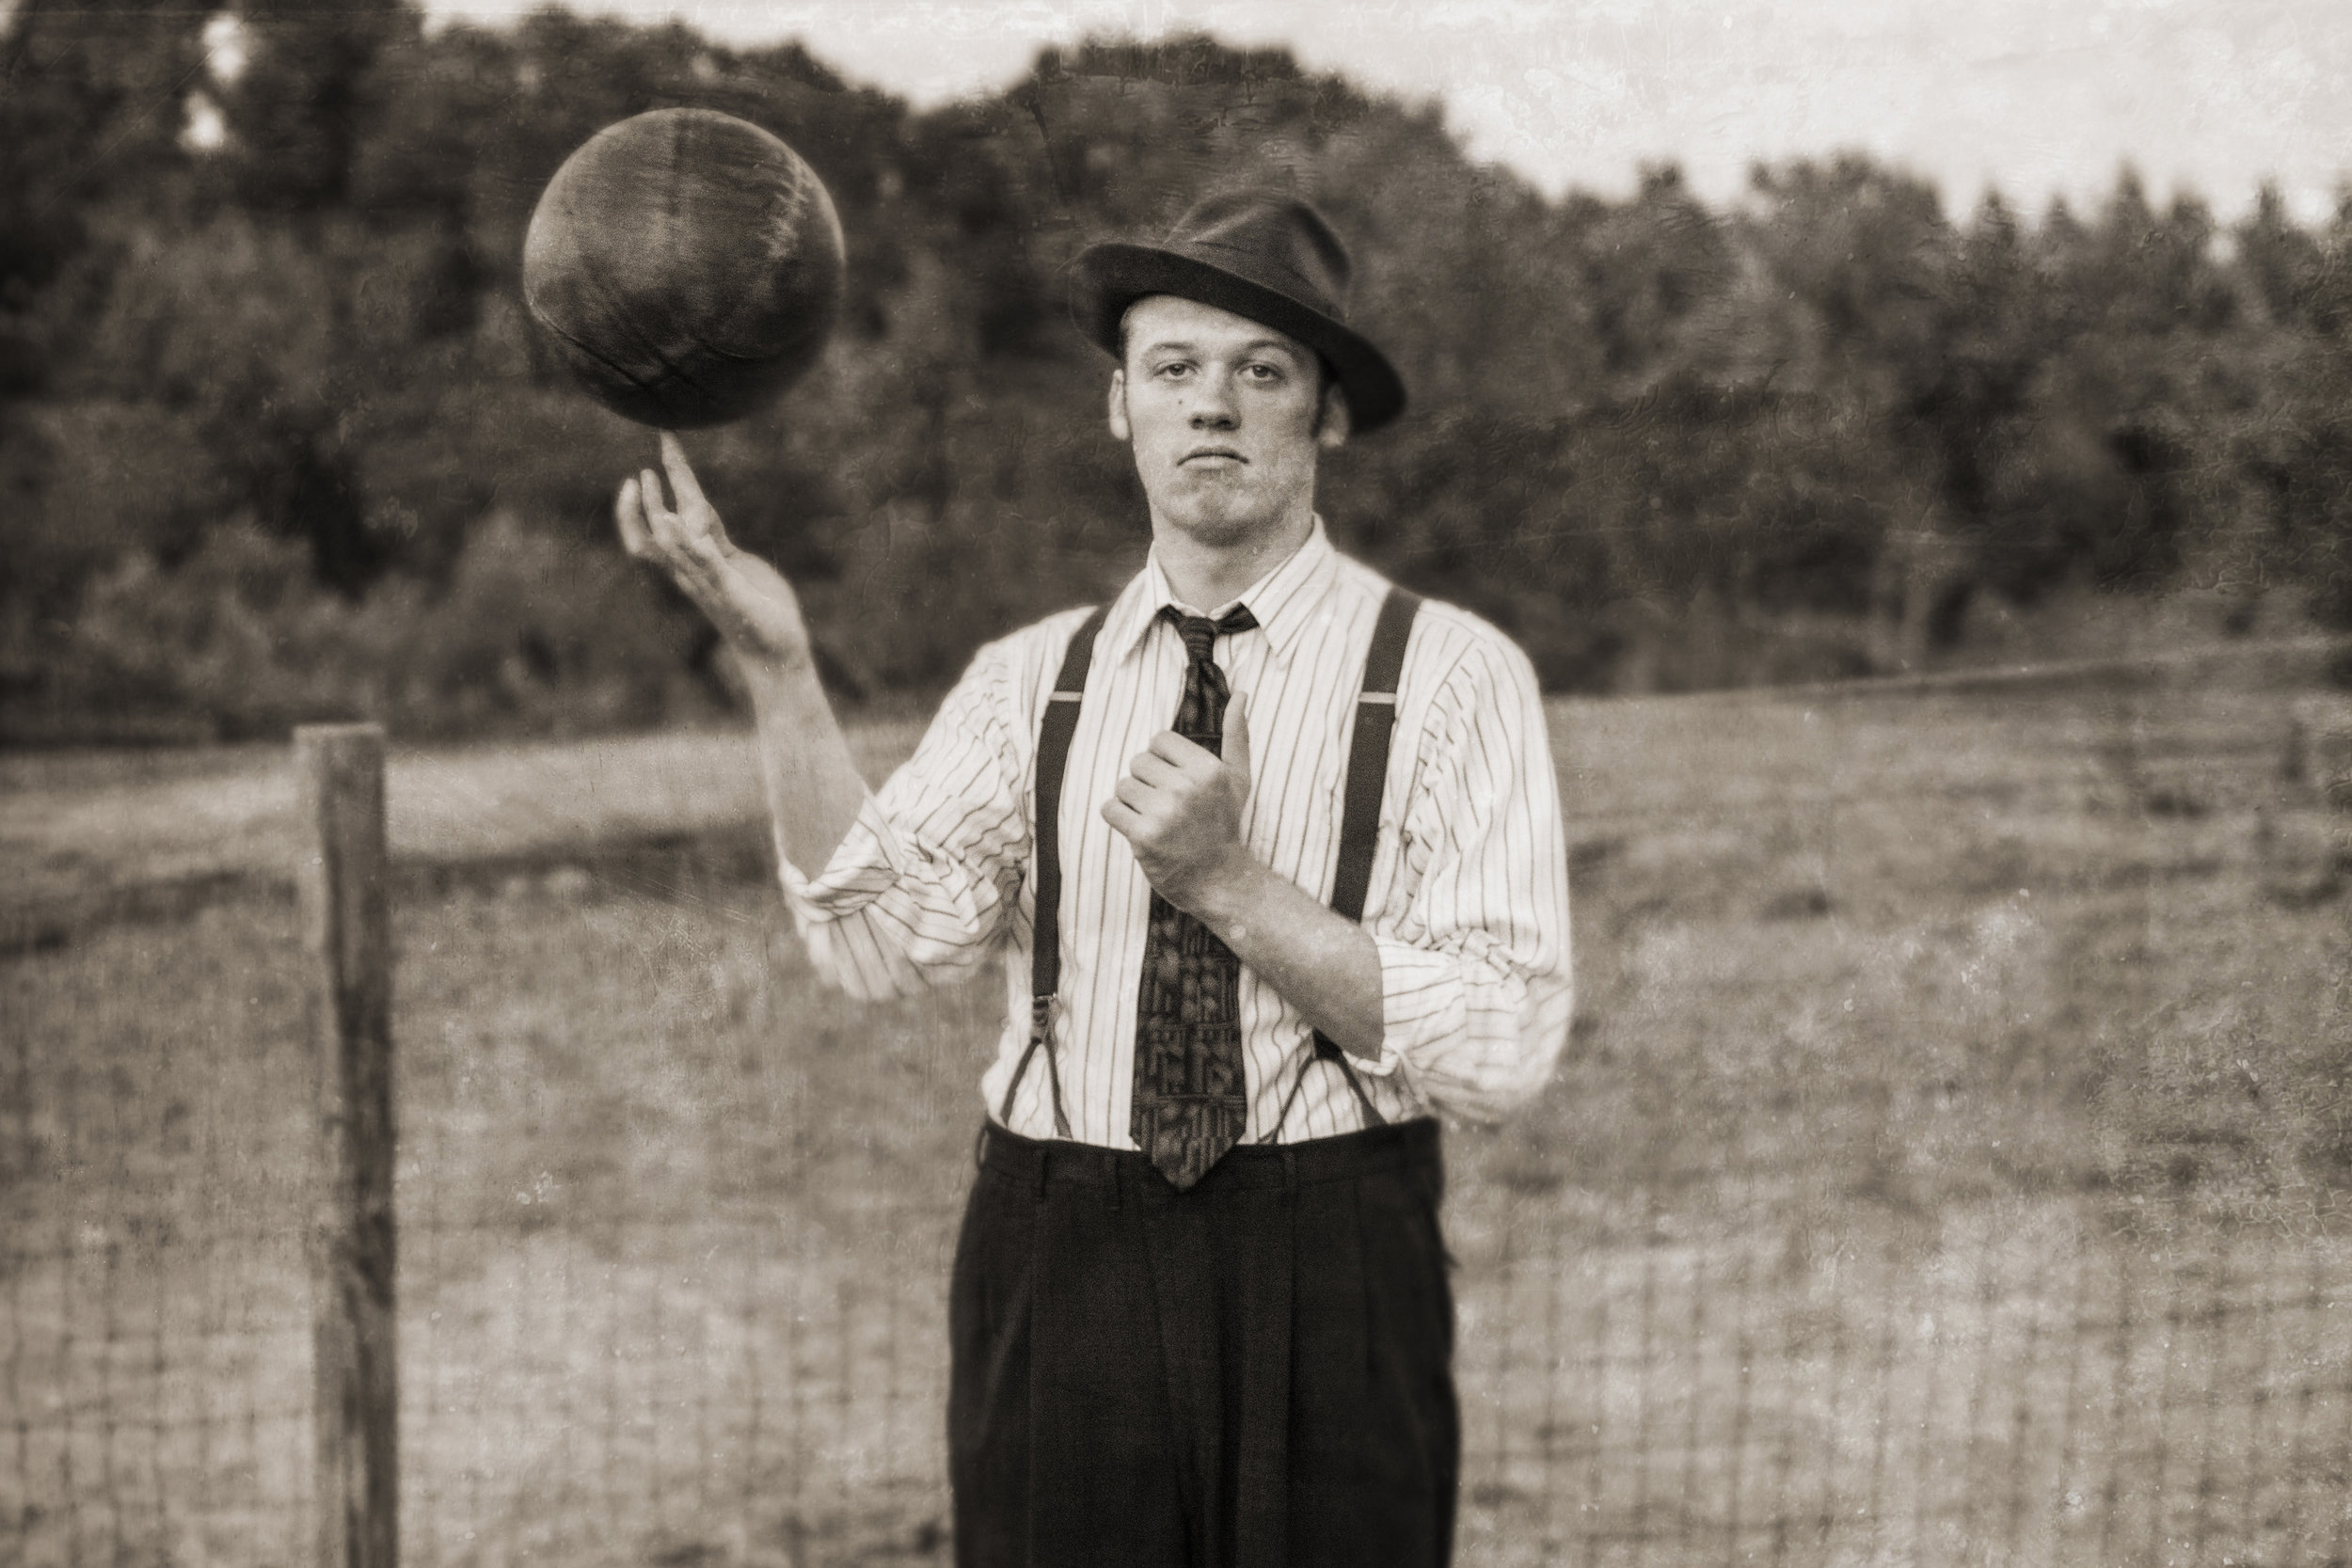 Carter Iddings as Haunt Johnny